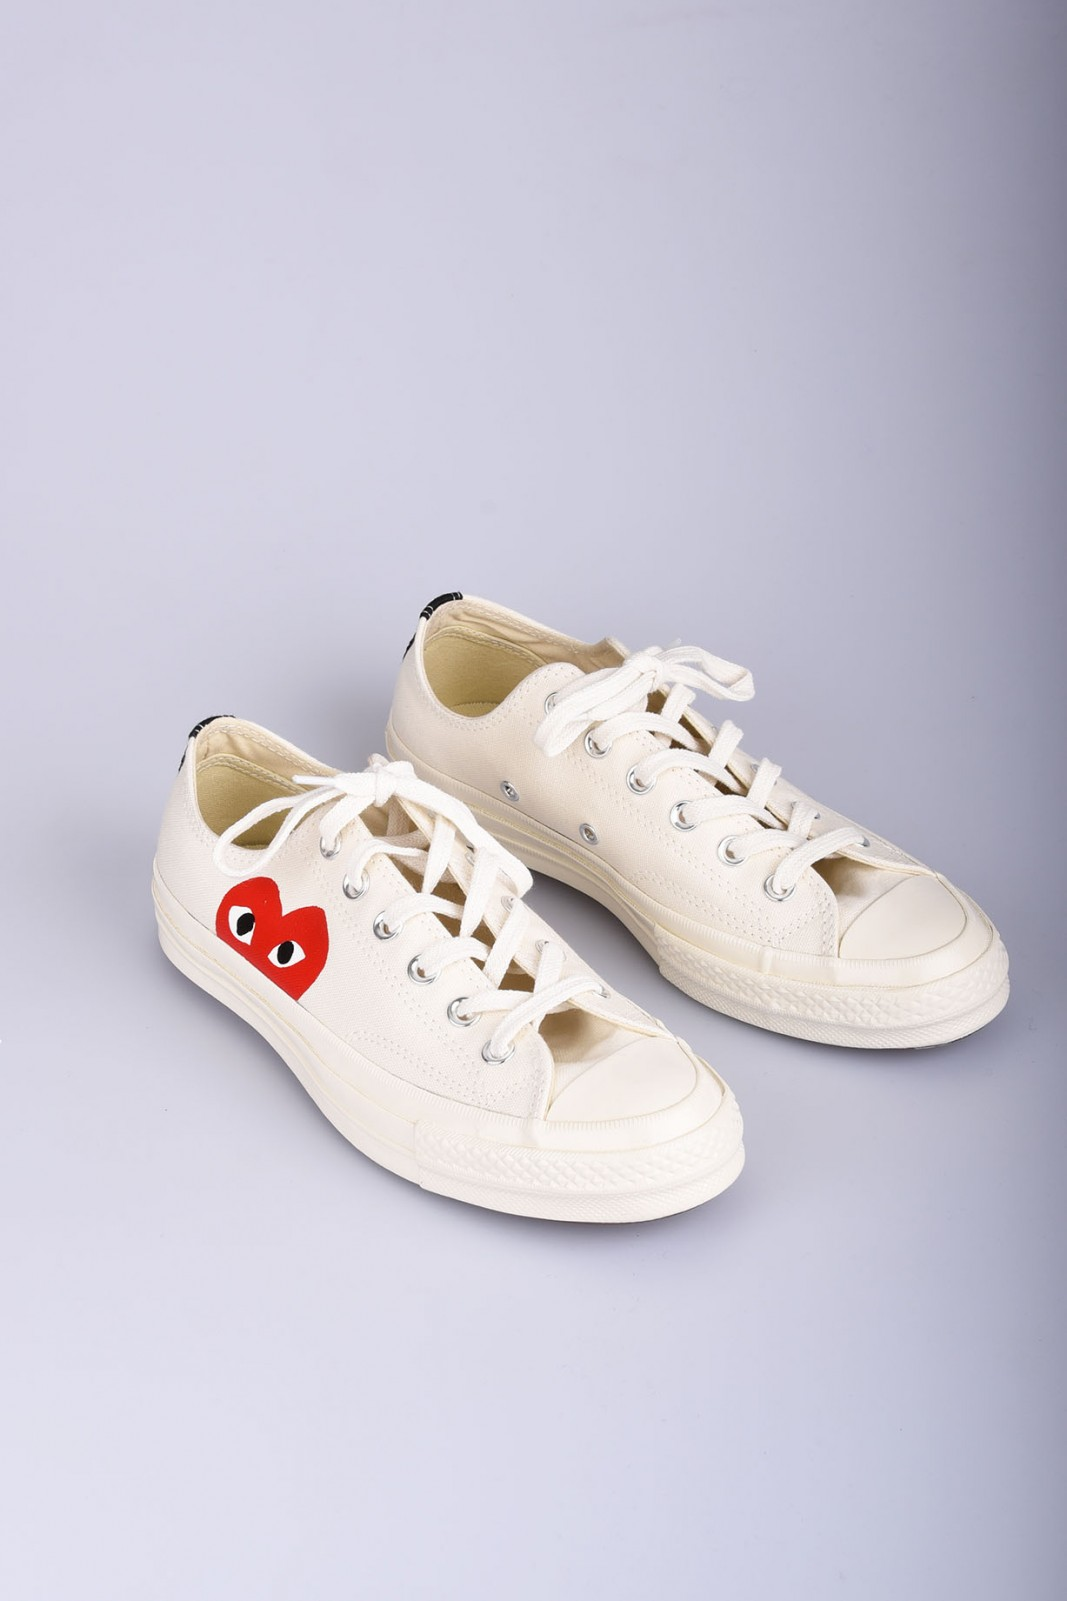 COMME DES GARCONS Play Converse Chuck Taylor All Star white low sneakers